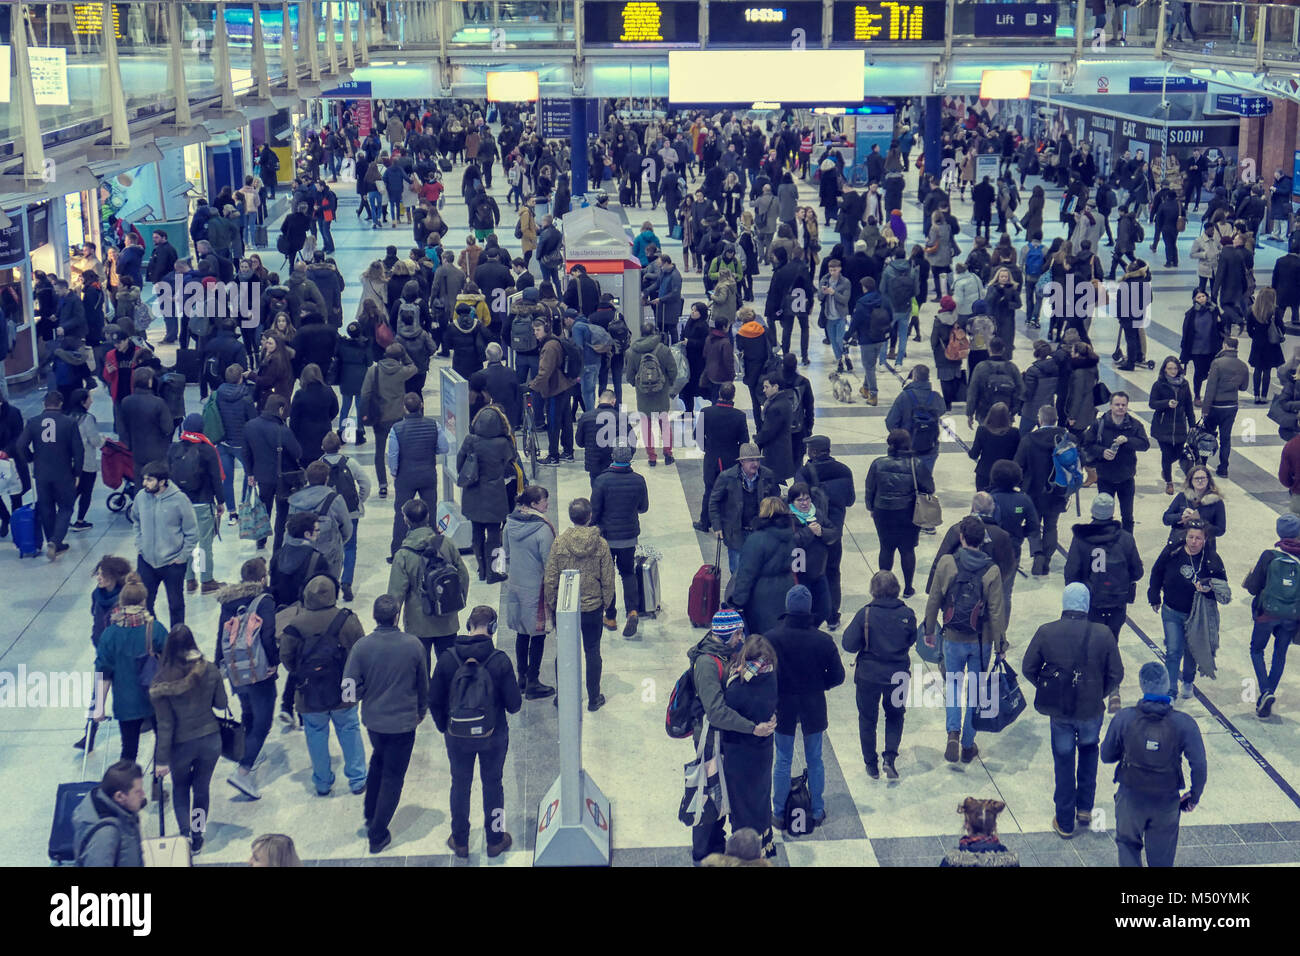 LONDON, UK-FEBRUARY 9, 2018: Inside Liverpool Station in London, people rushing around as seen from above view - Stock Image